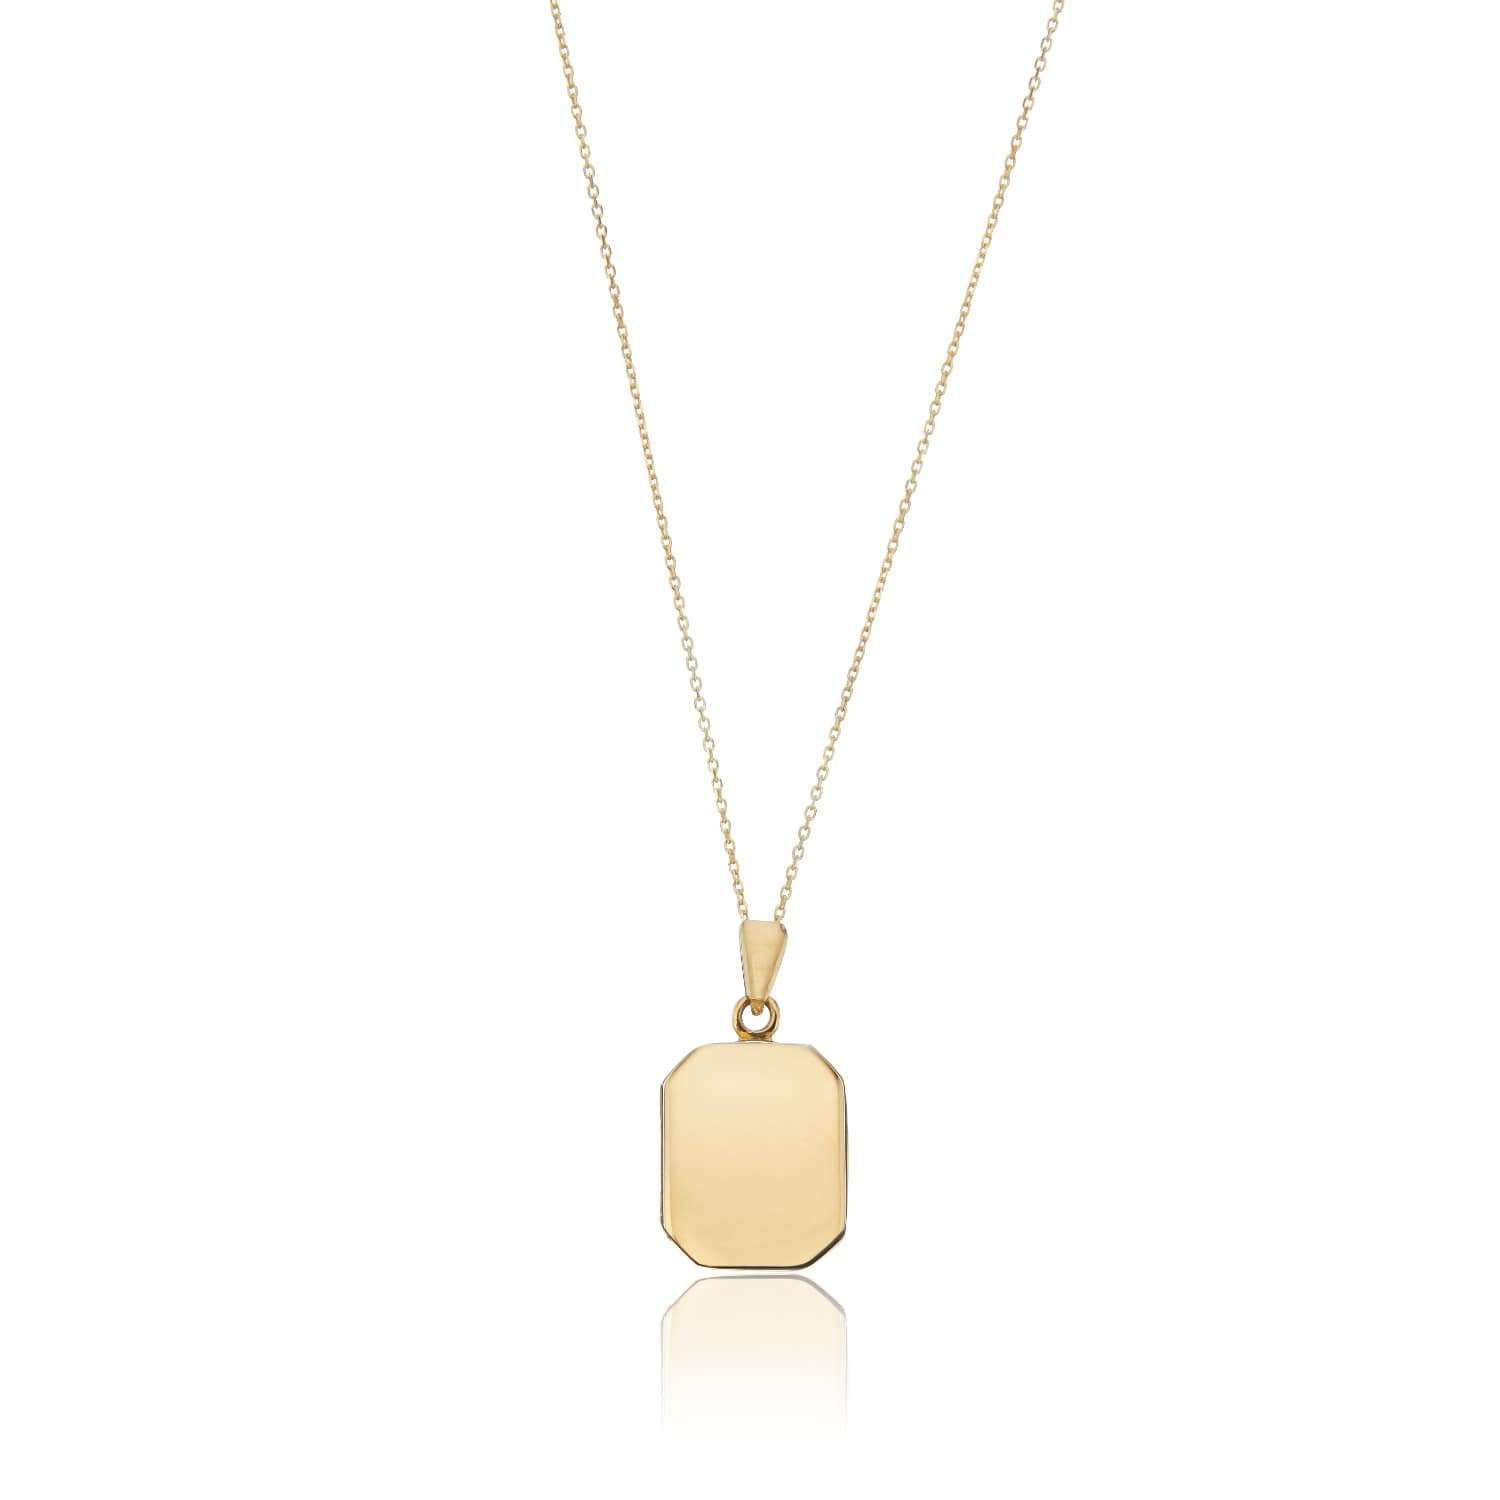 721ae4cc59a41 Gold Small Square Locket Necklace by Lily & Roo